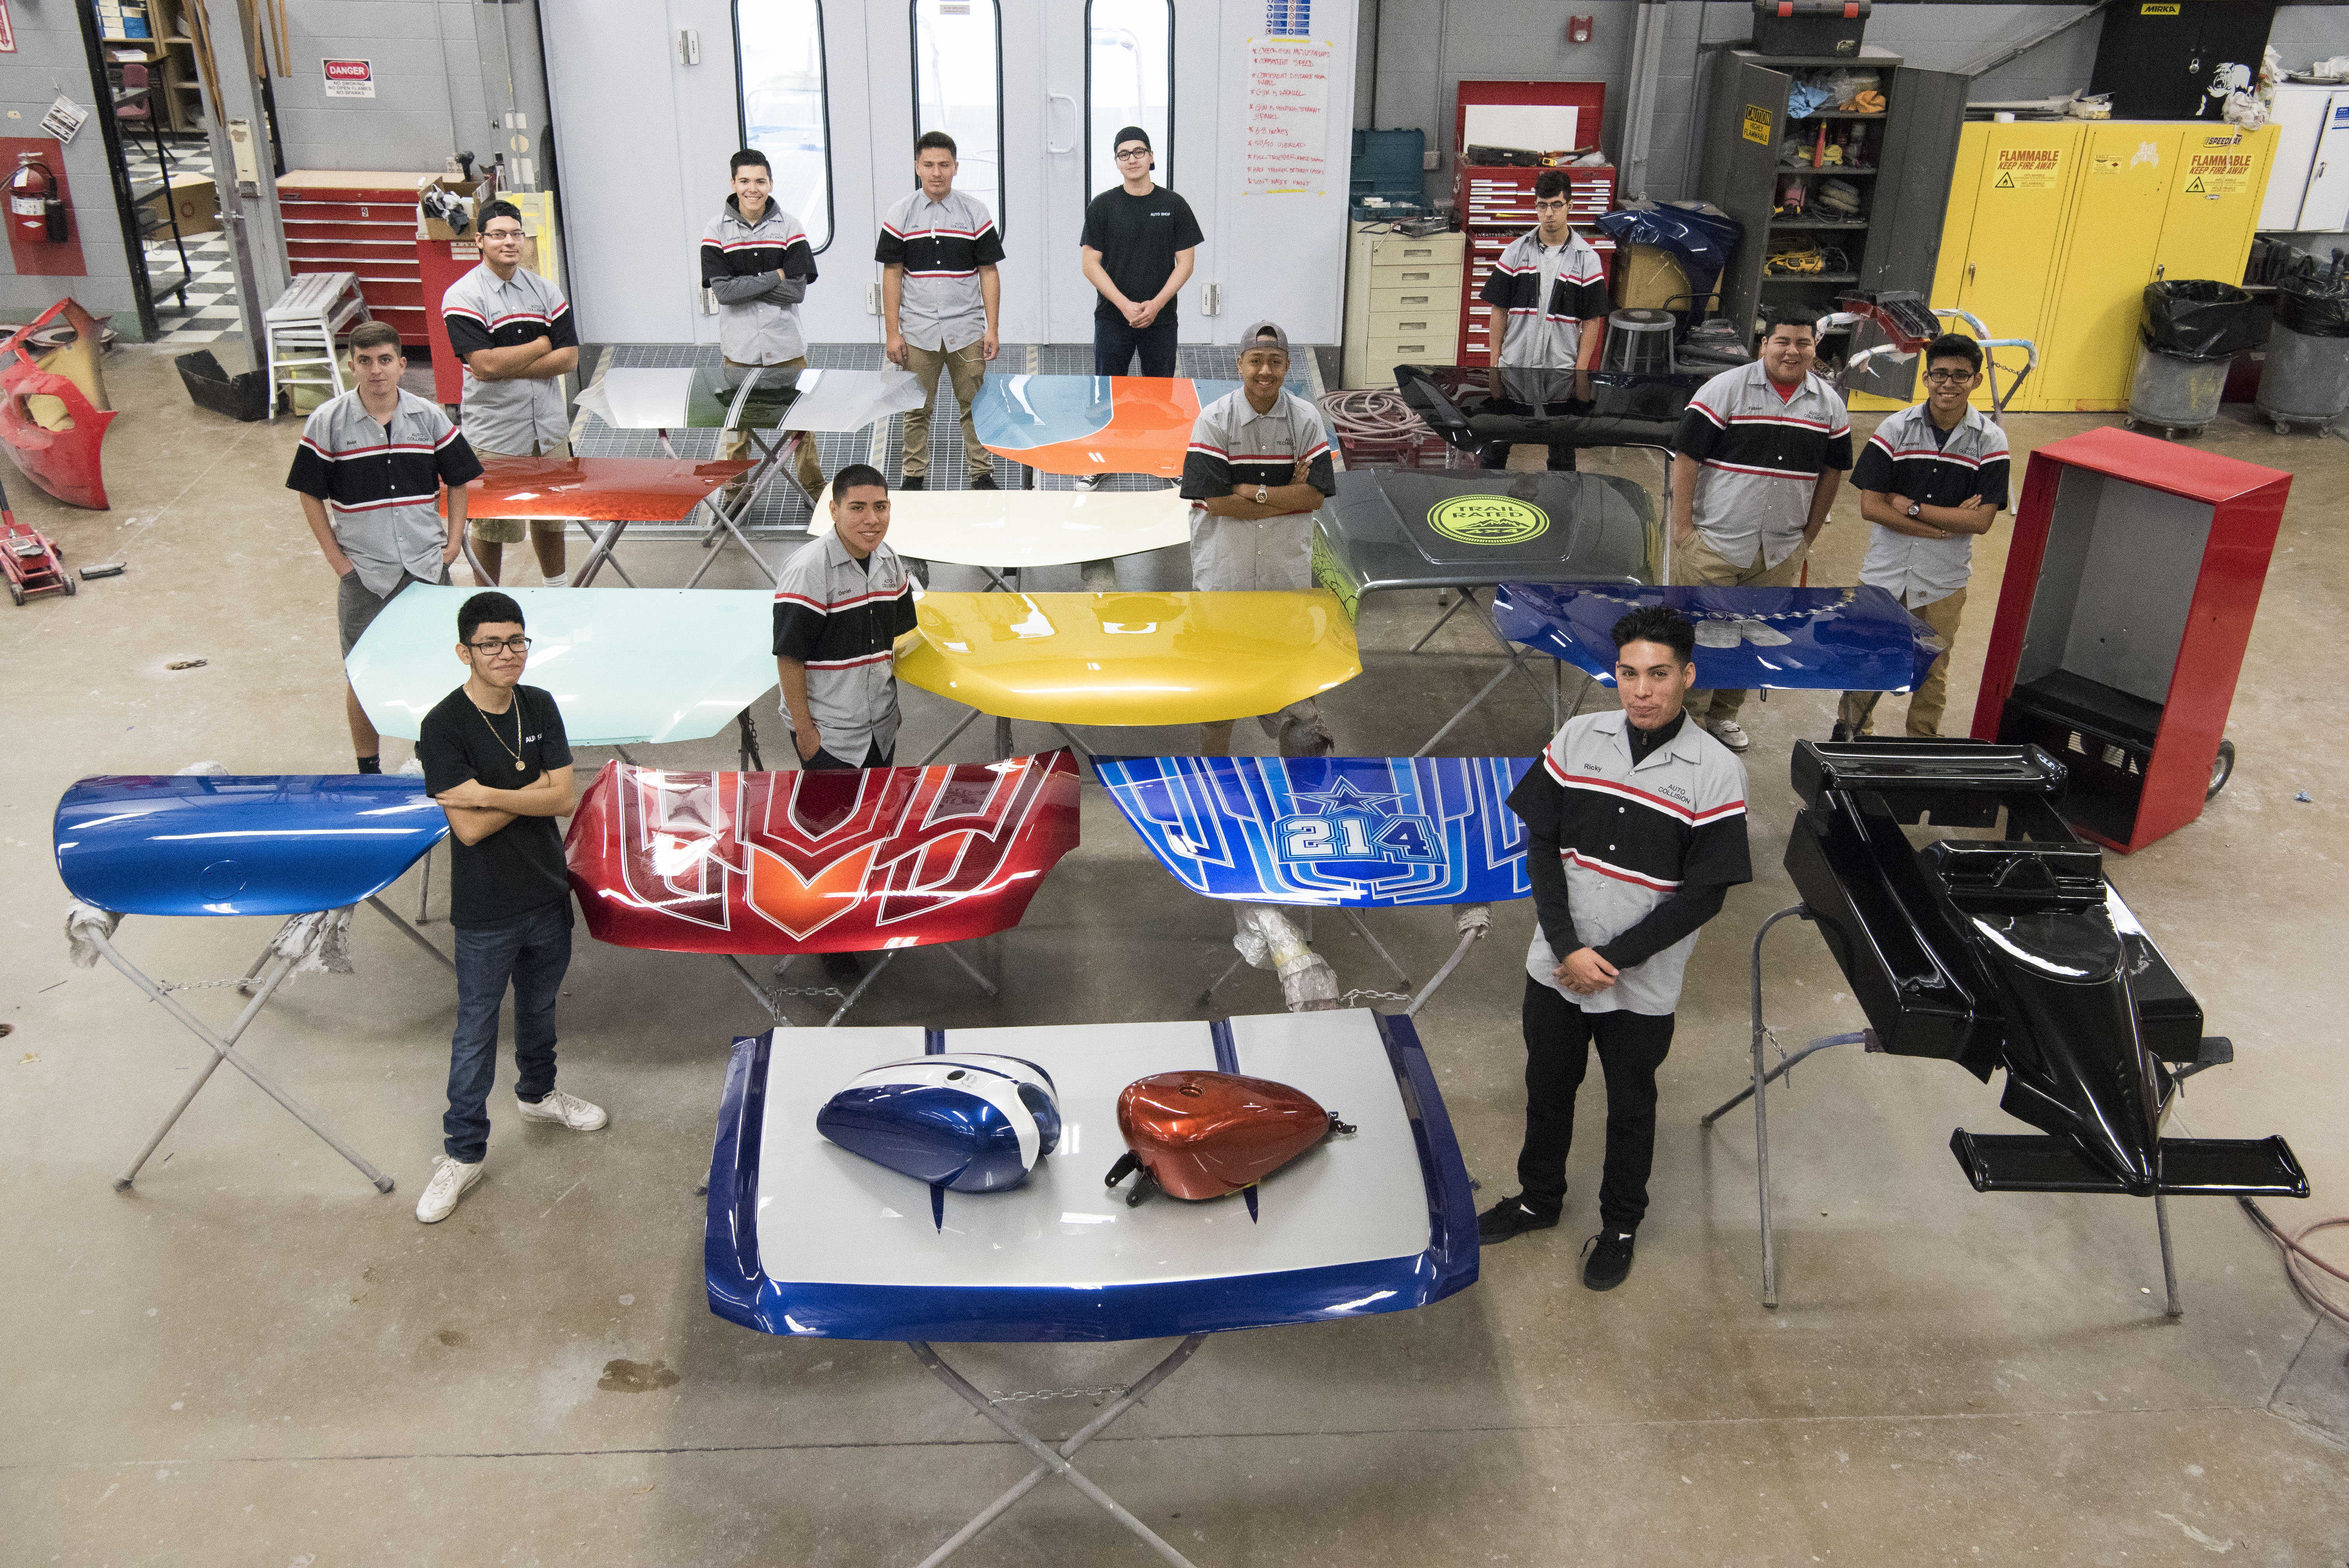 Students at Mesquite High School near Dallas raise additional funds for their automotive program by building and auctioning off Cobra kit cars to community members.